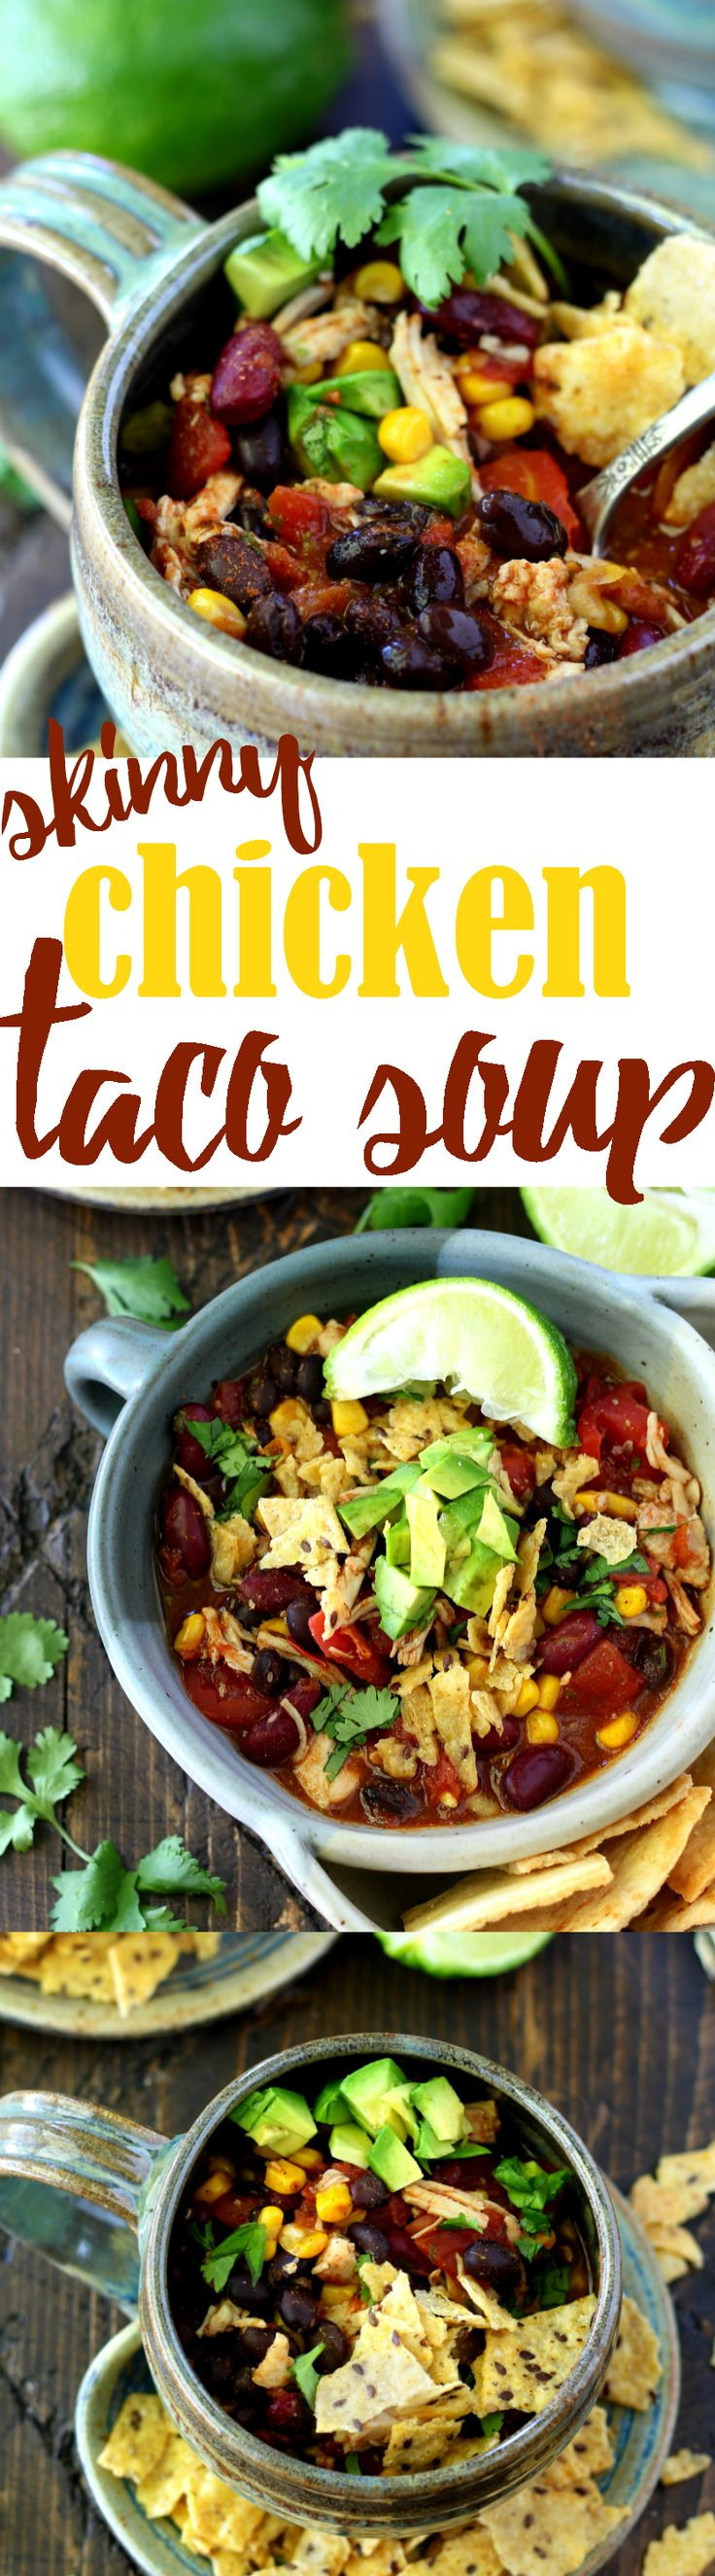 This recipe for 1-pot Skinny Chicken Taco Soup has got to be the easiest, quickest, most flavorful way to cook up a hearty Tex-Mex inspired bowl of deliciousness!